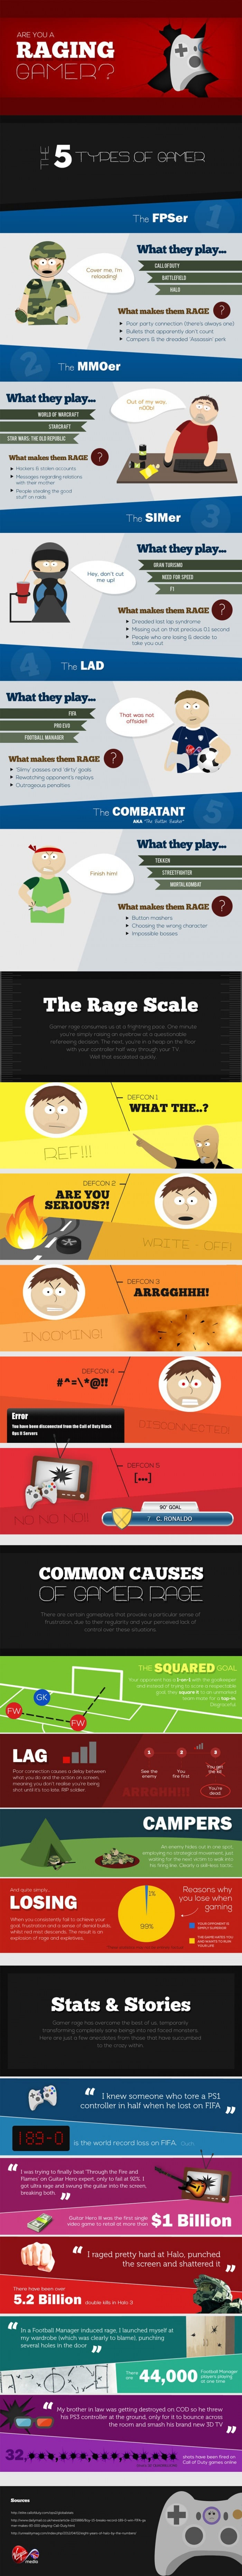 Are you a raging gamer?